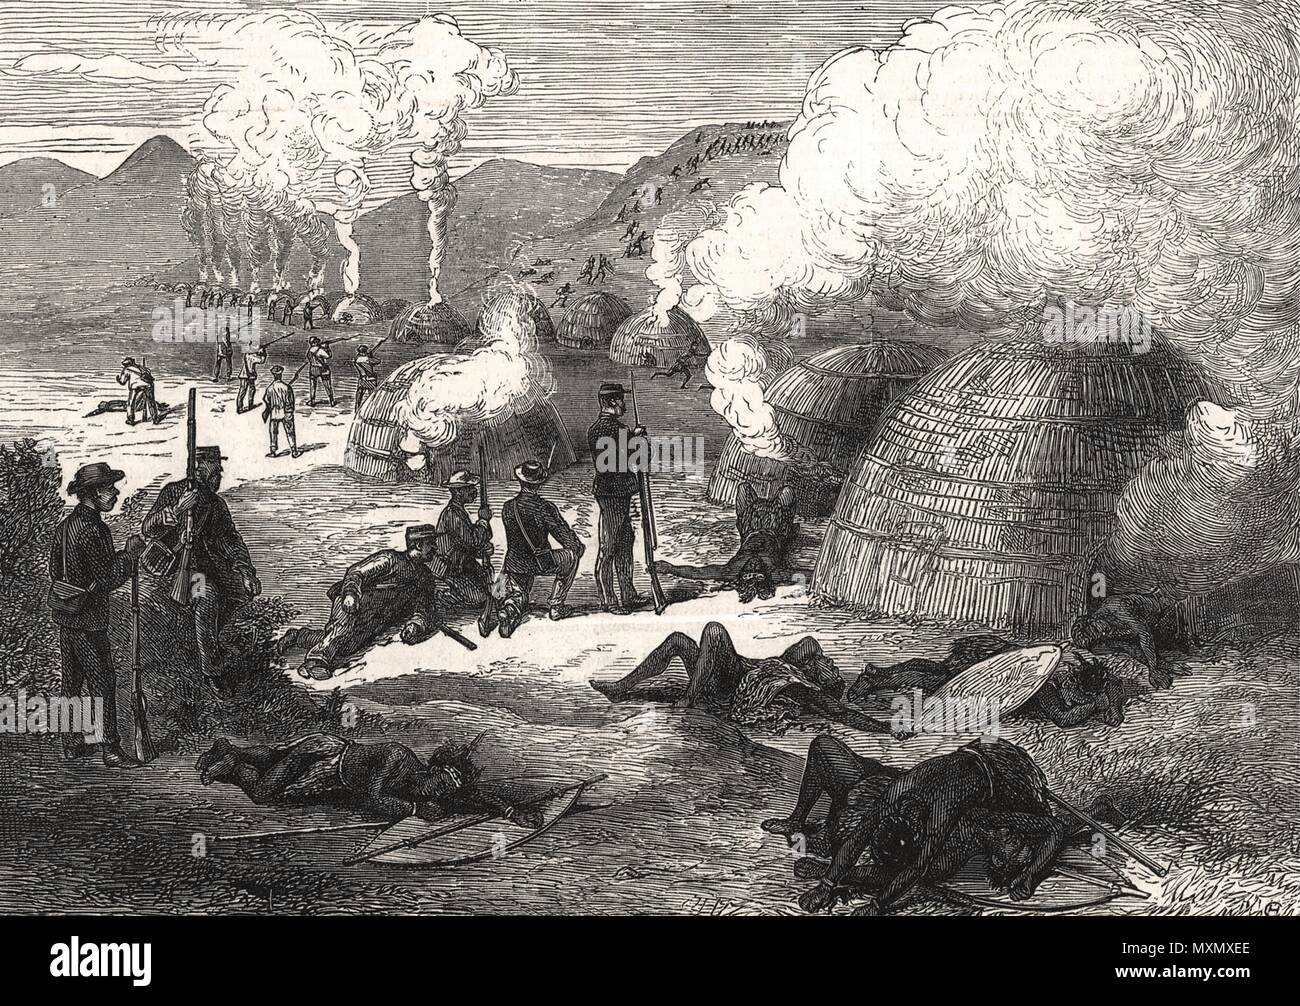 Burning of Kreli's Kraal. South Africa 1877. The Illustrated London News - Stock Image